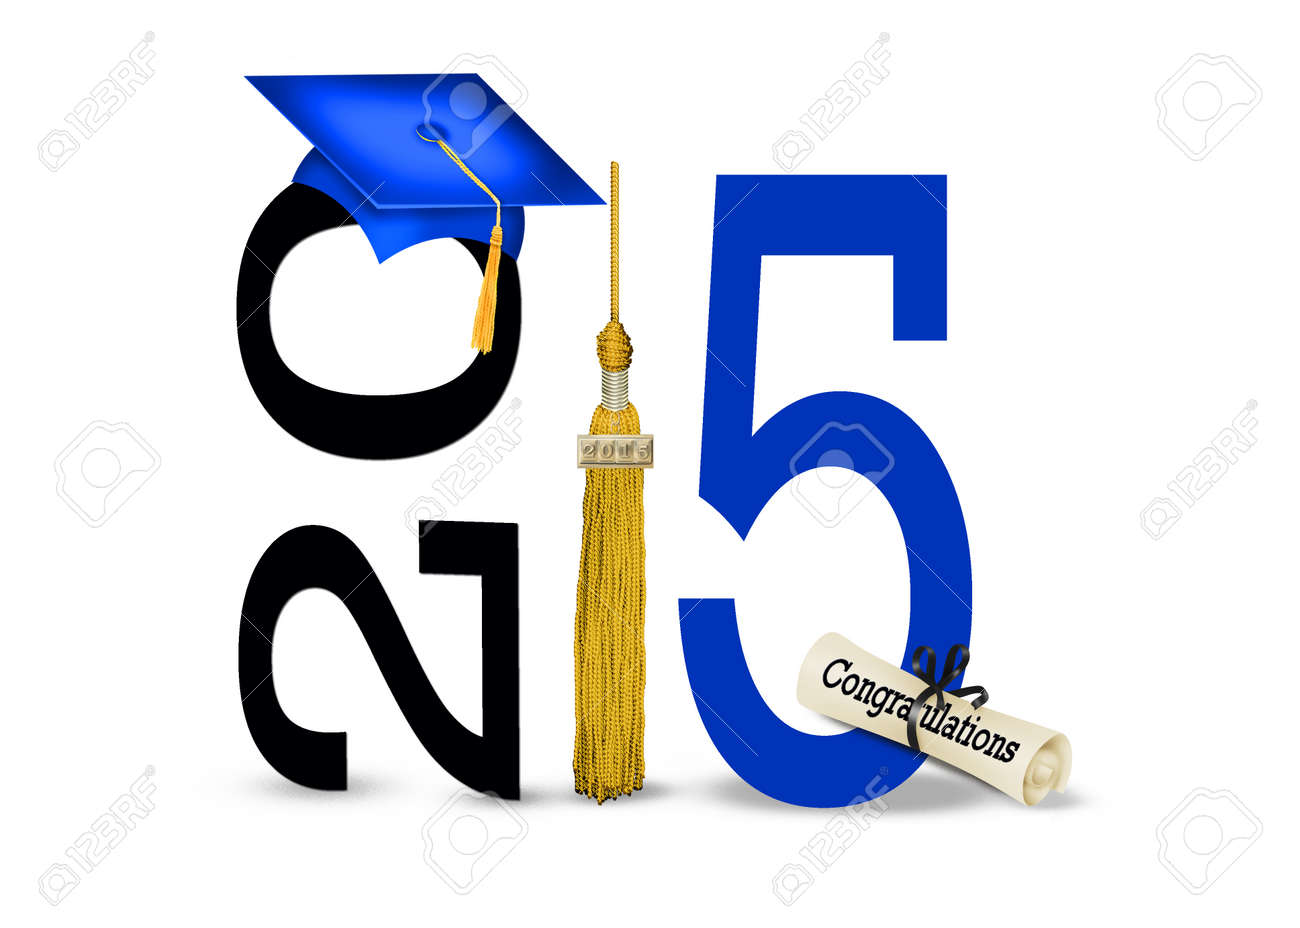 blue graduation cap with gold tassel for class of 2015 Stock Photo - 29578057